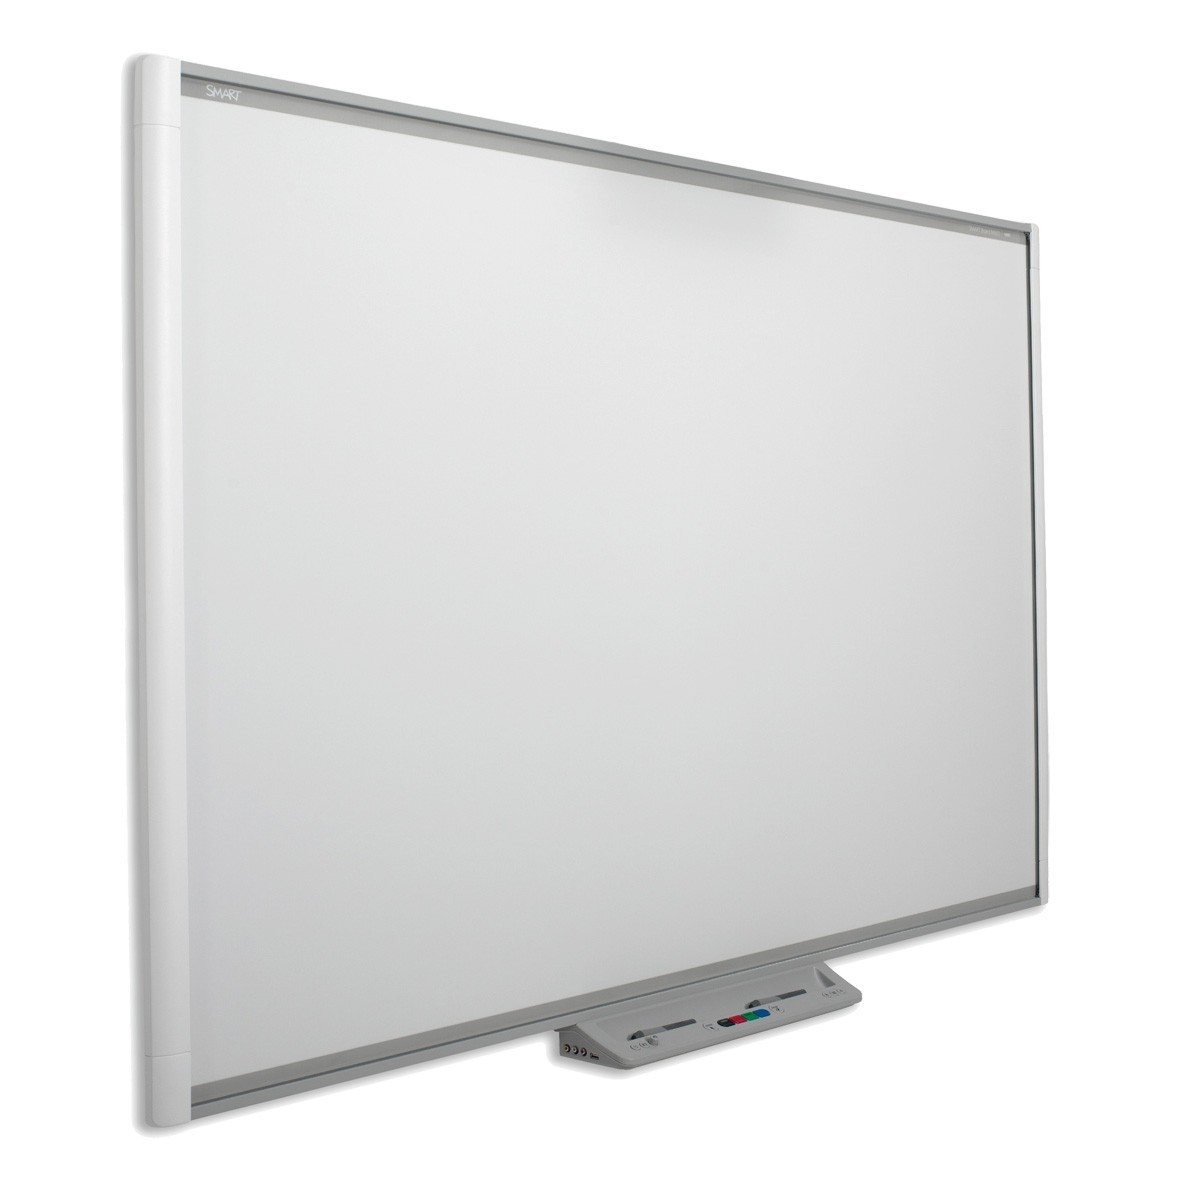 Smart Board M680 77 Diagonally 61.6x46.3 InterActive Whiteboard SBM680